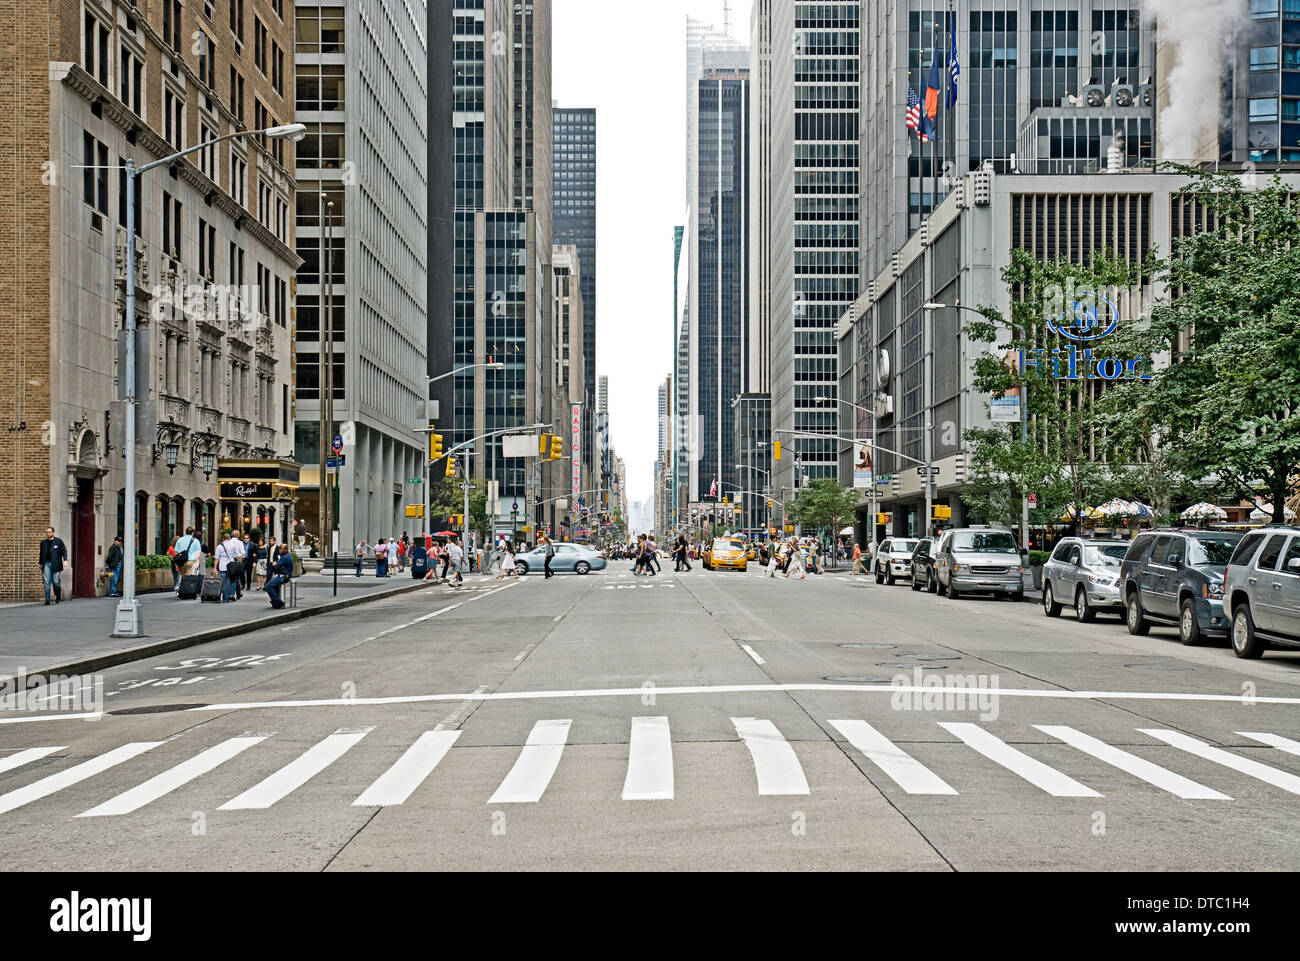 Empty urban street scene on Avenue of the Americas in New ...